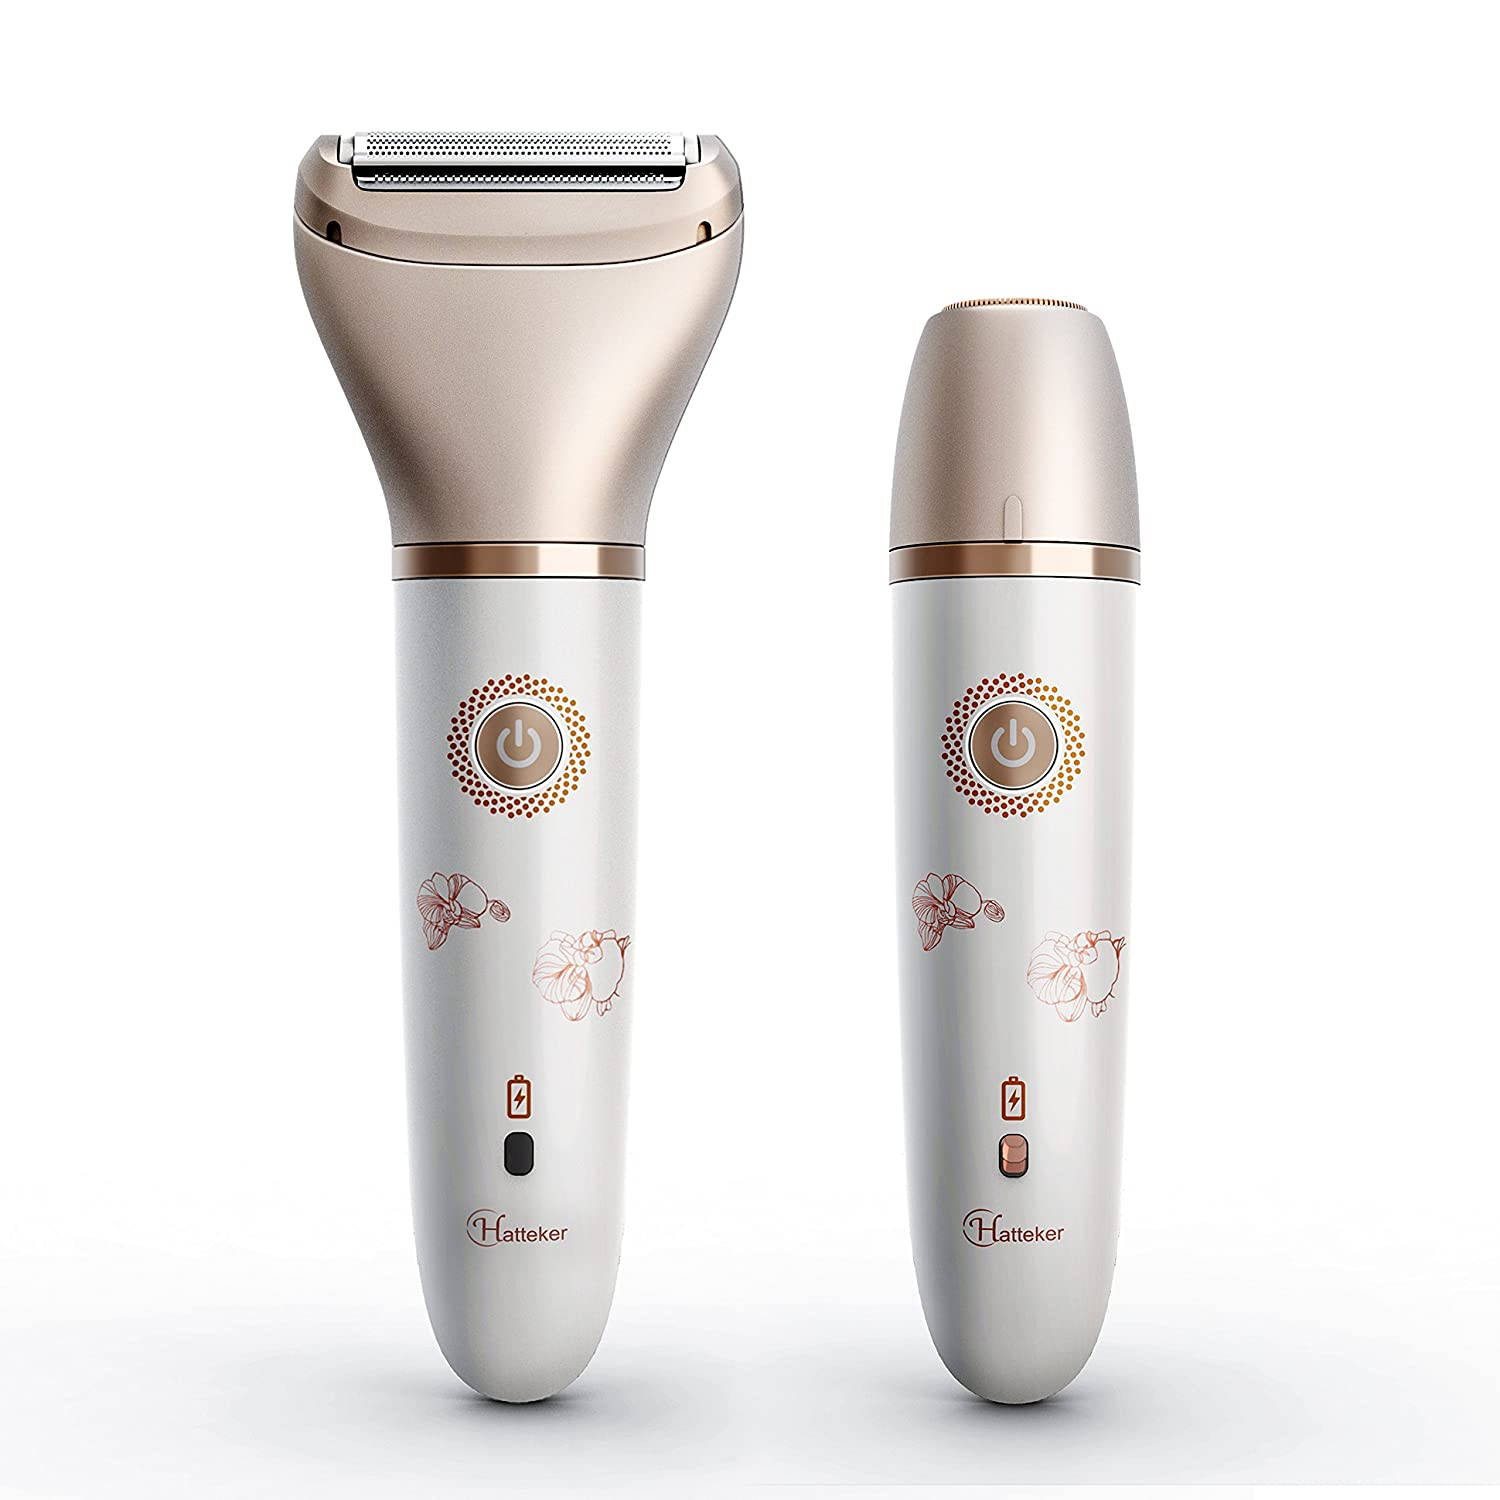 Hatteker Electric Ladies Shaver, Portable Painless Facial Hair Remover 2 in 1 Wet & Dry Cordless Women's Epilator with Fine Hair Removal, Body Hair Trimmer for Legs, Forearms and Bikini Line Ltd.